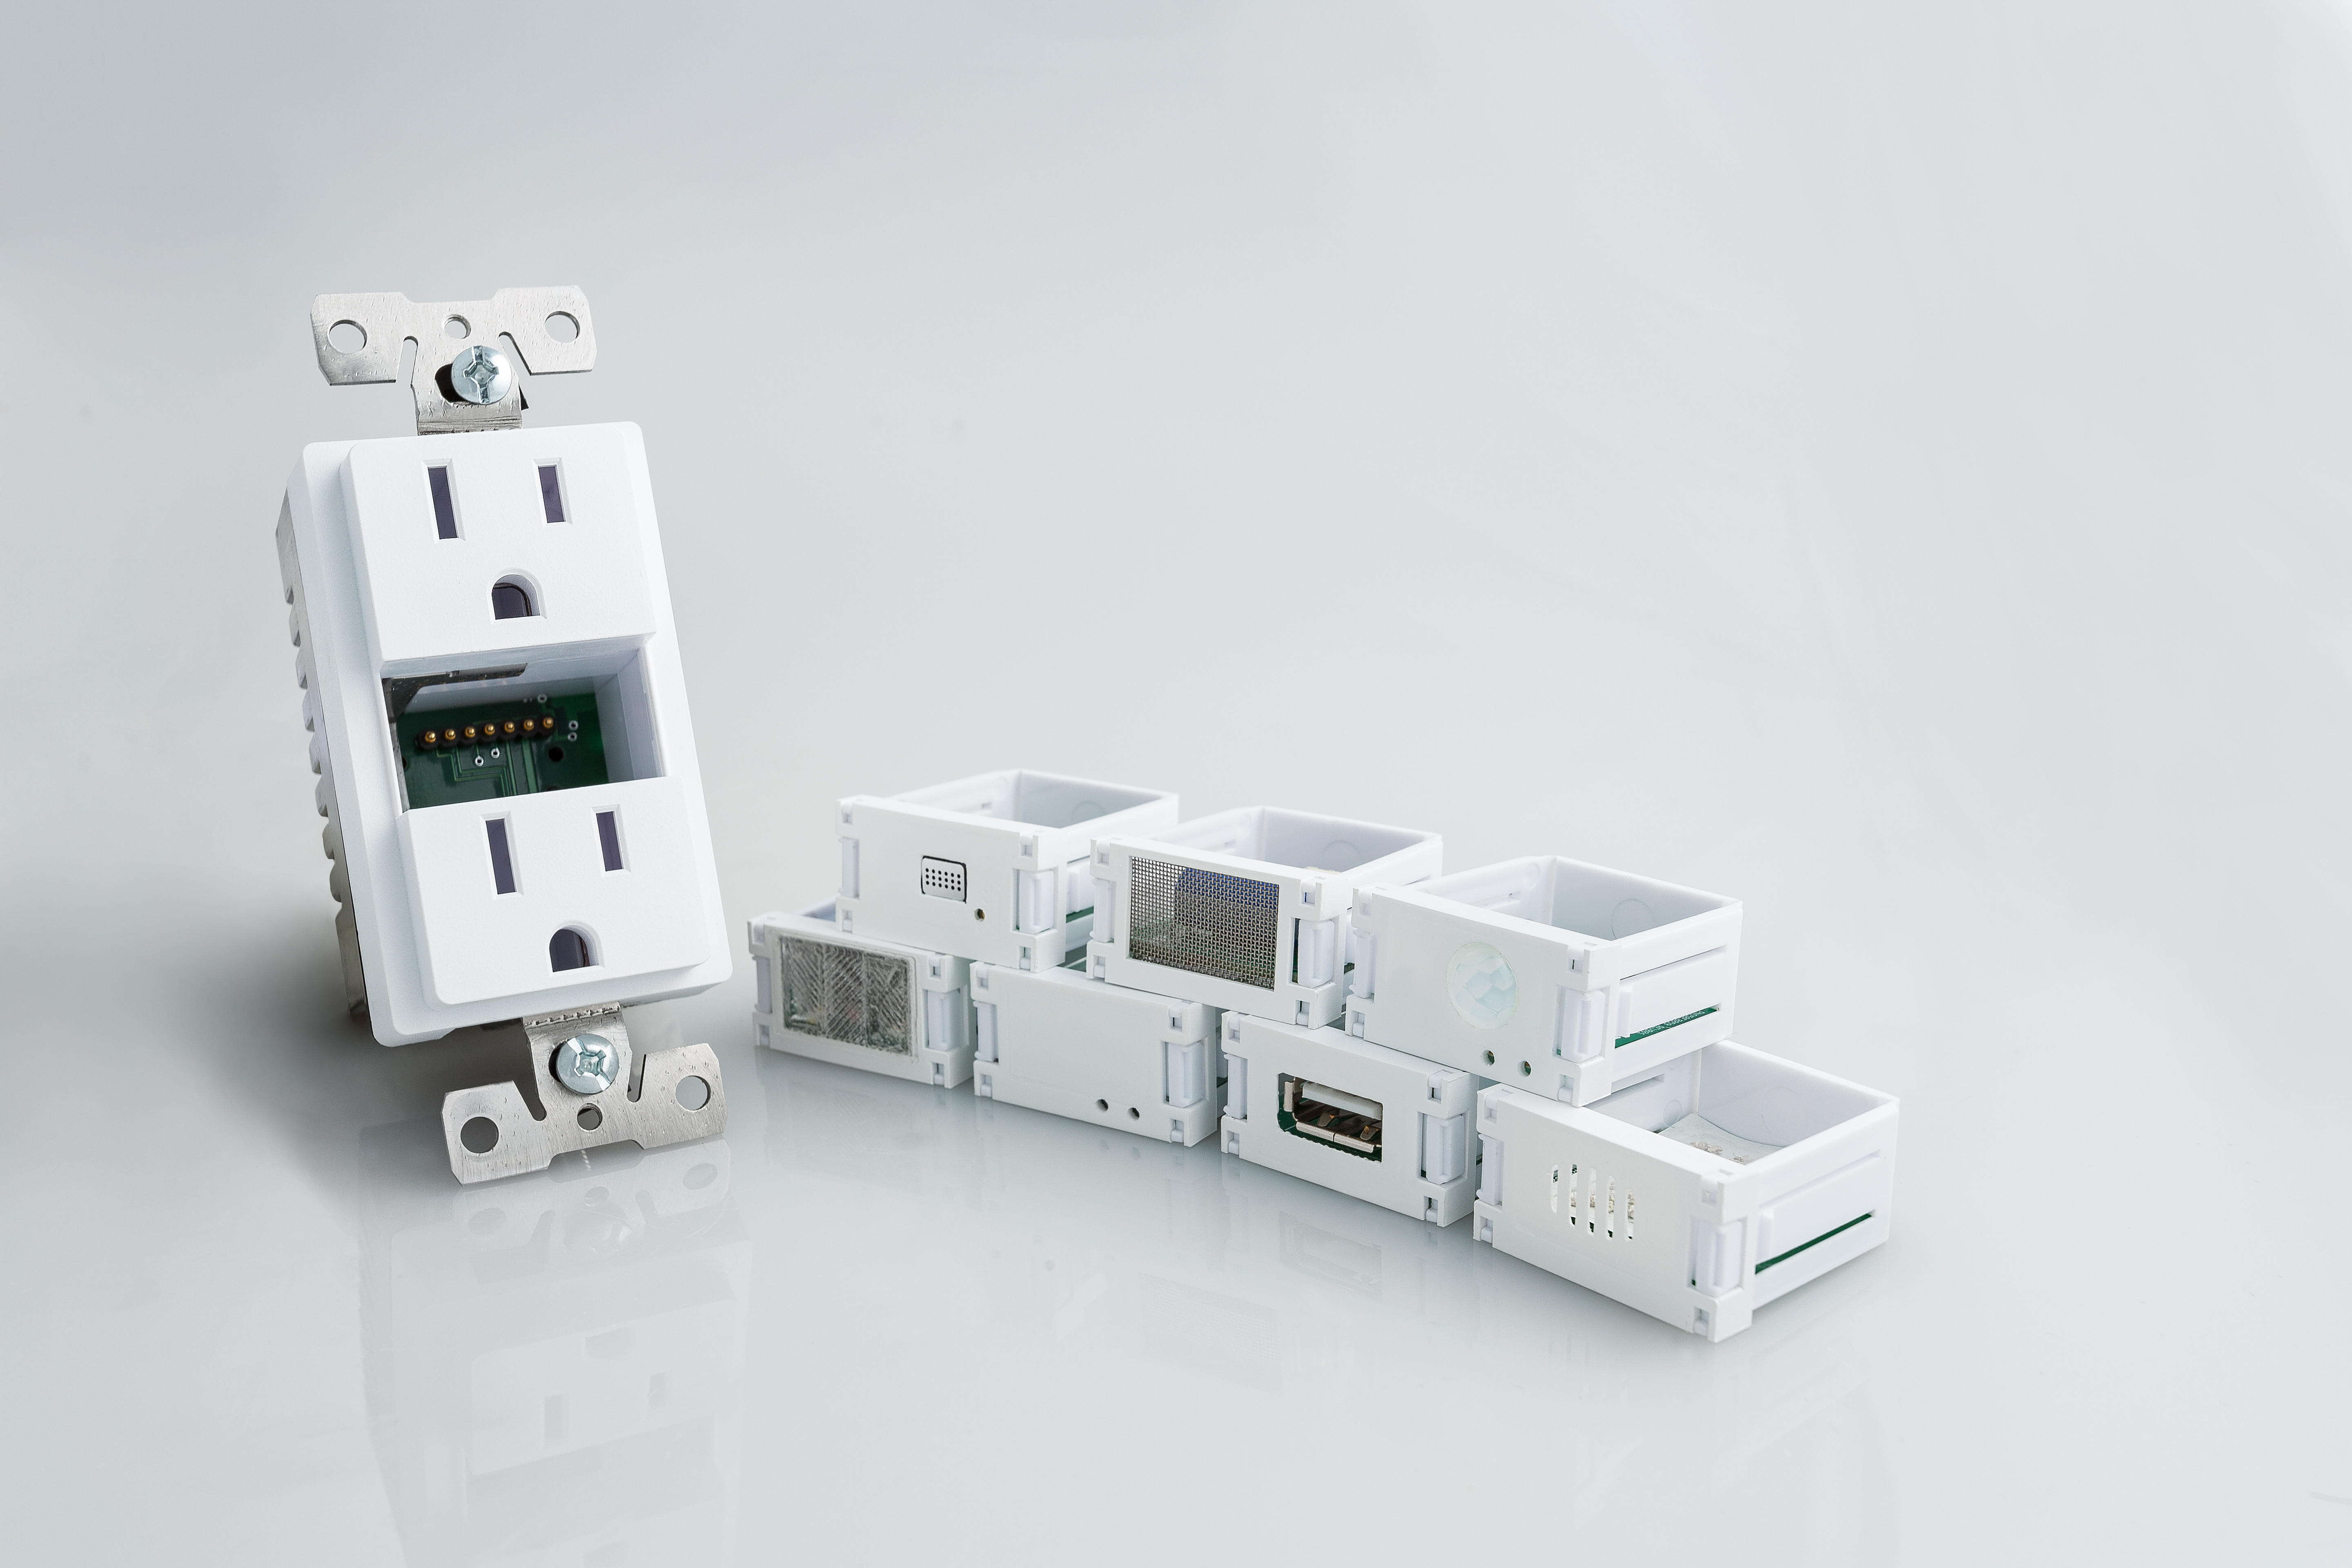 img-0268-outlet-with-inserts-1